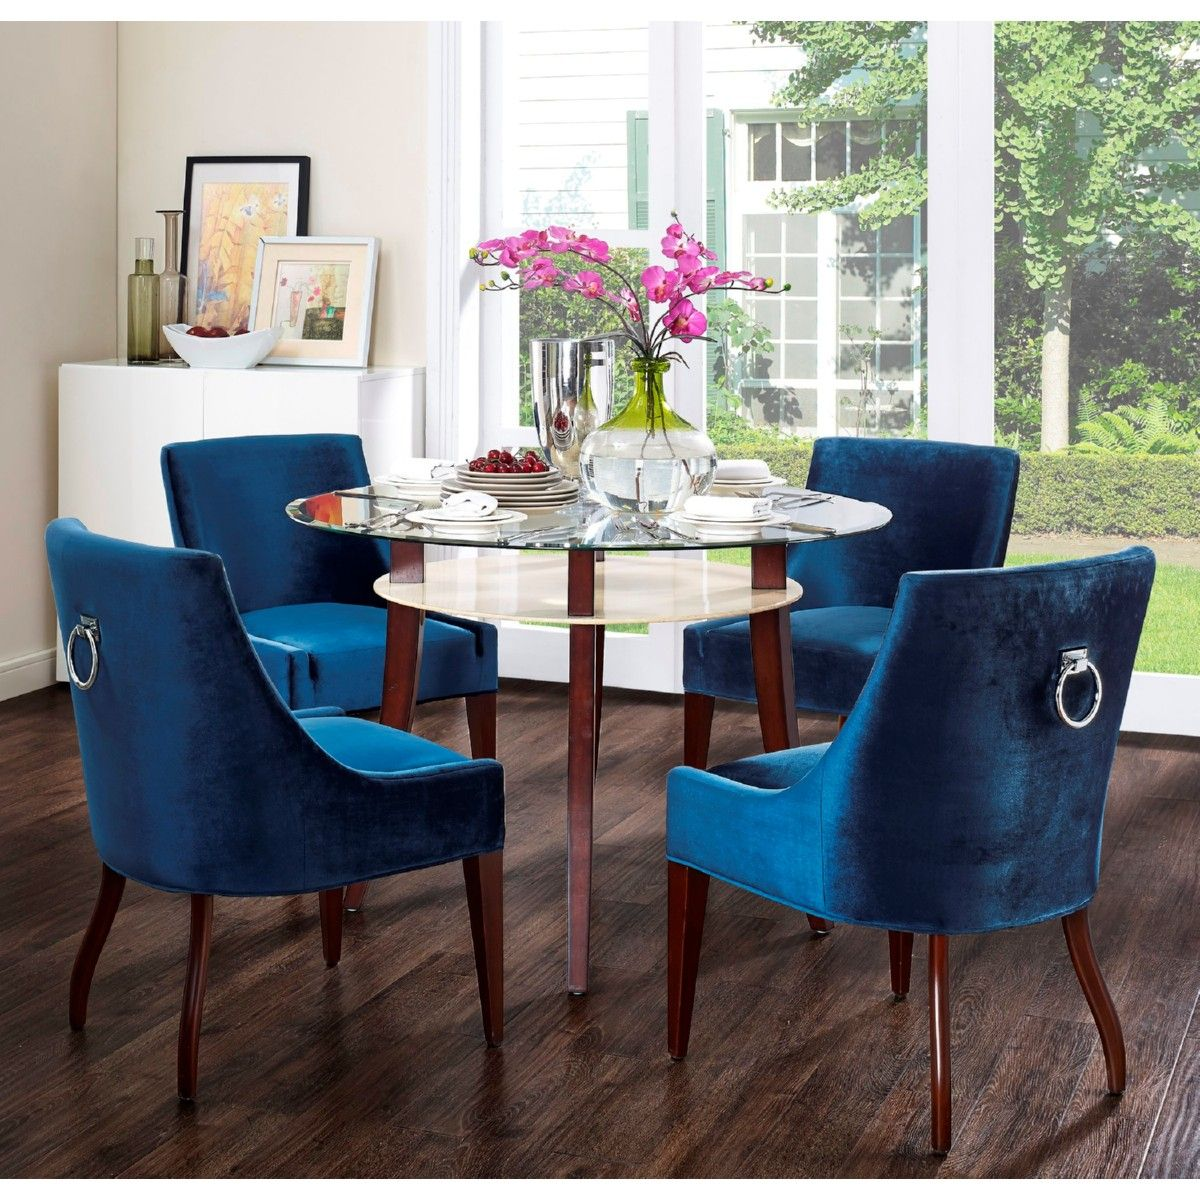 Excludes A Few Products Tov Furniture Dover Blue Velvet Dining Chair W Silver Ring On Back Set Of 2 Dynamichome